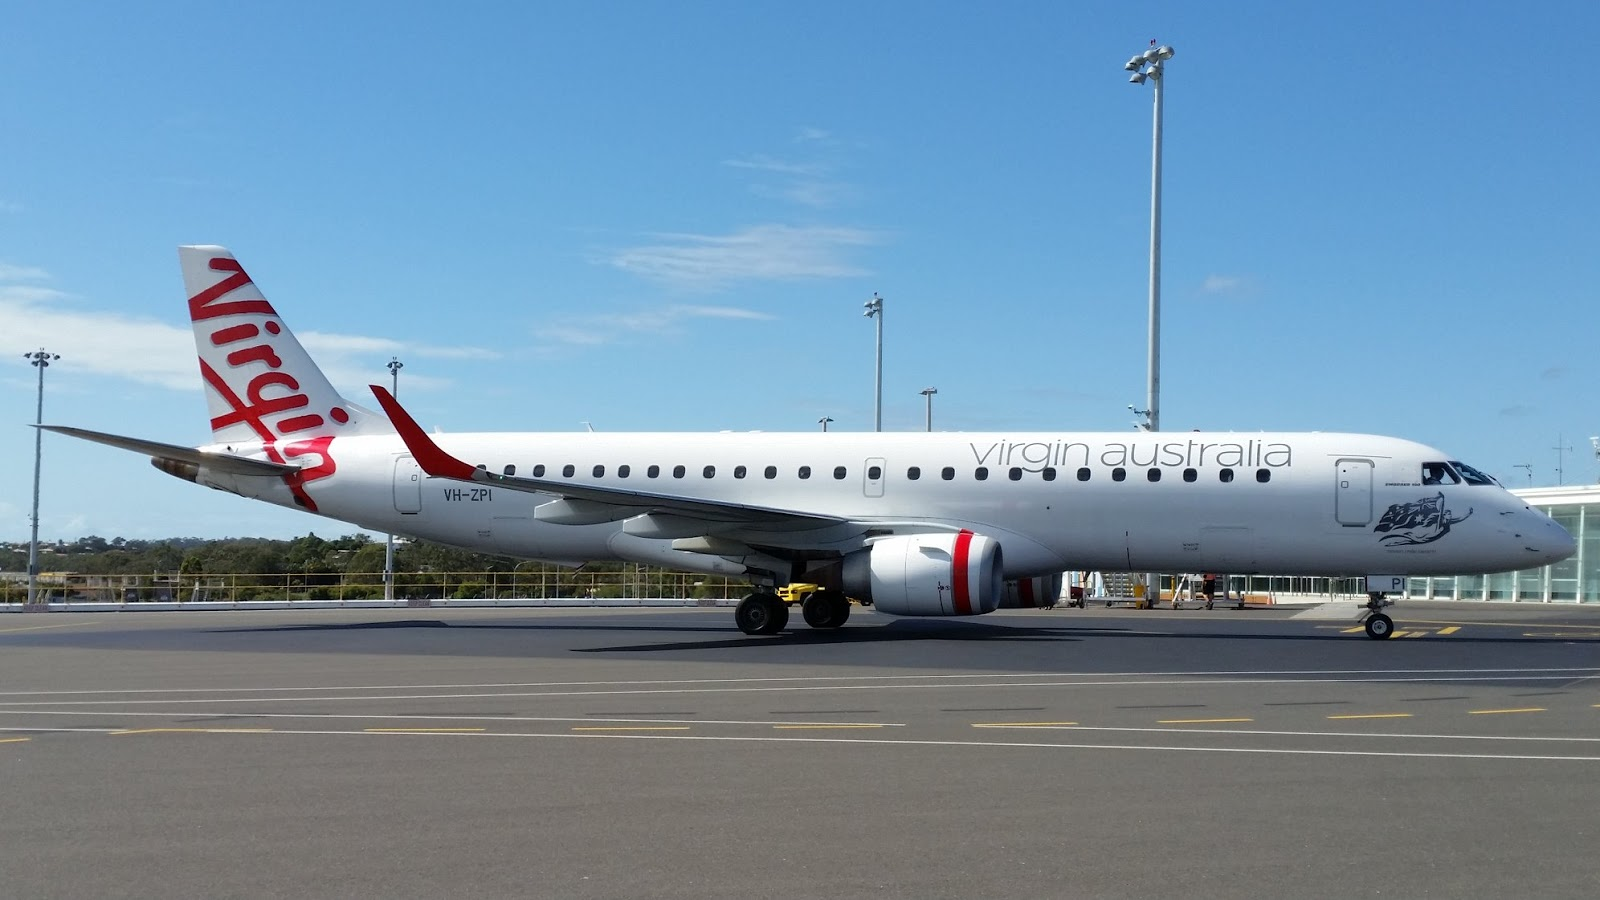 Virgin Australia Wikipedia